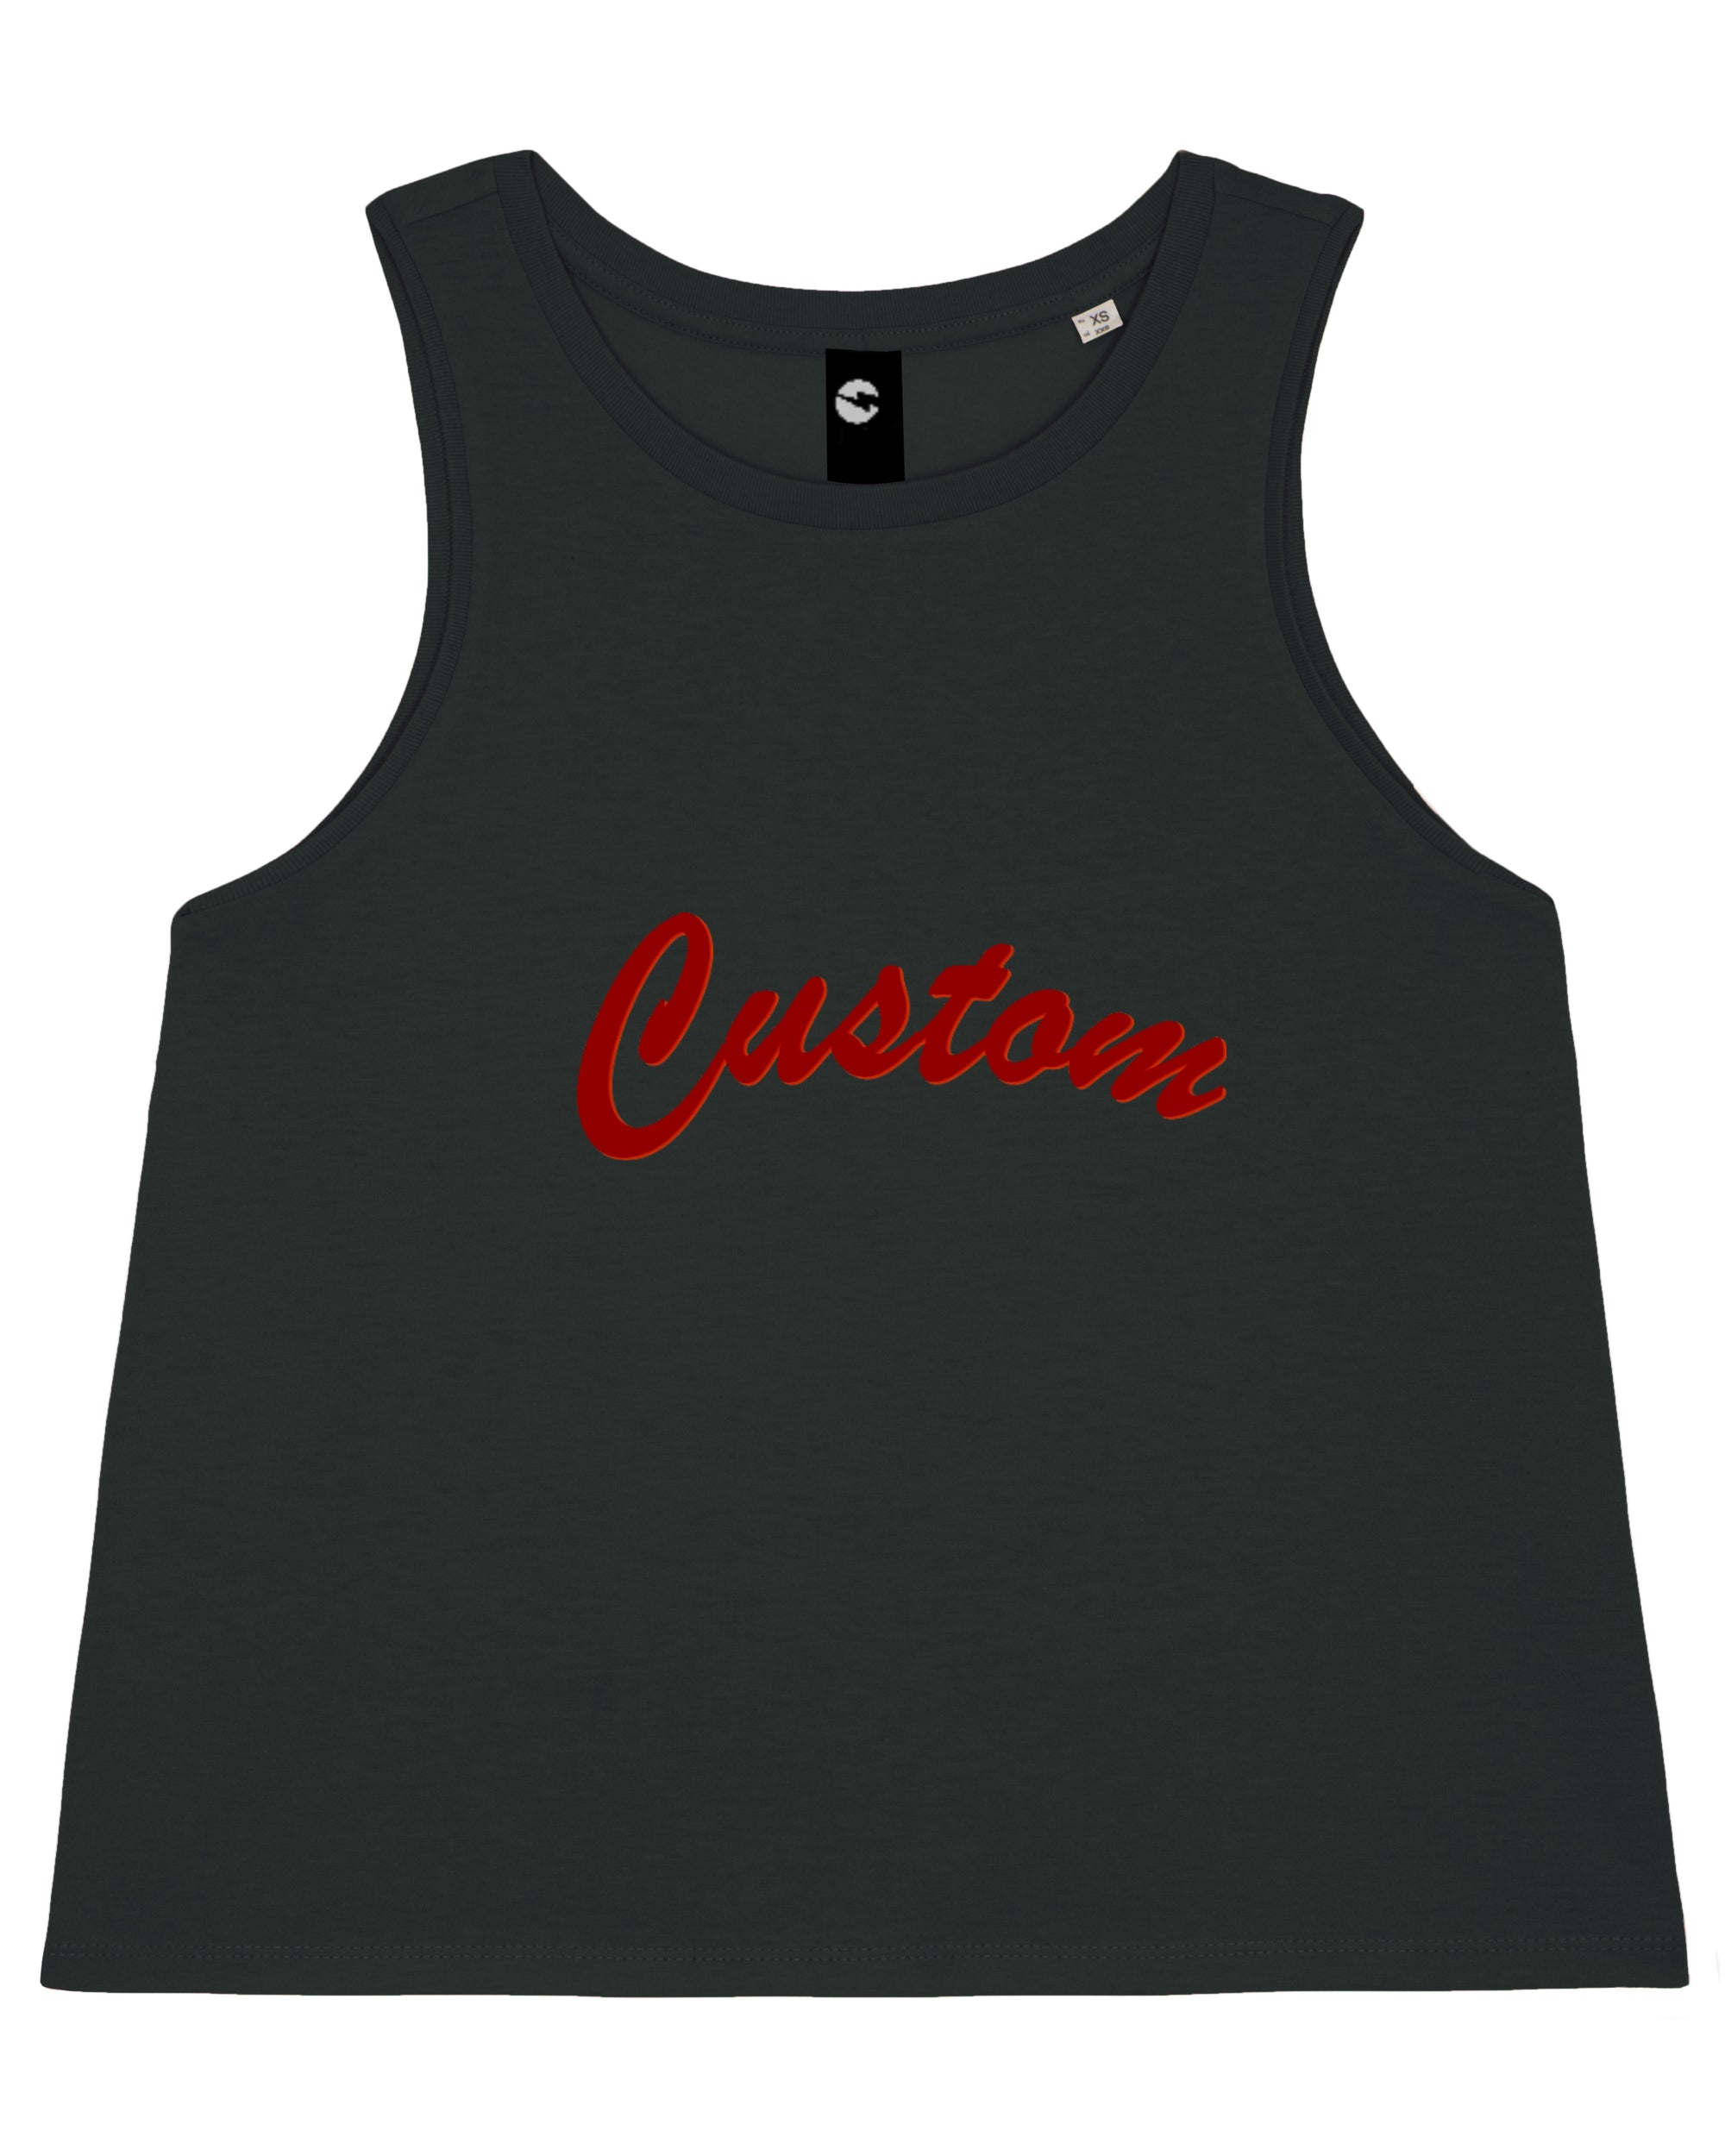 WOMEN'S CROPPED ORGANIC COTTON TANK TOP - customisable centre chest embroidery